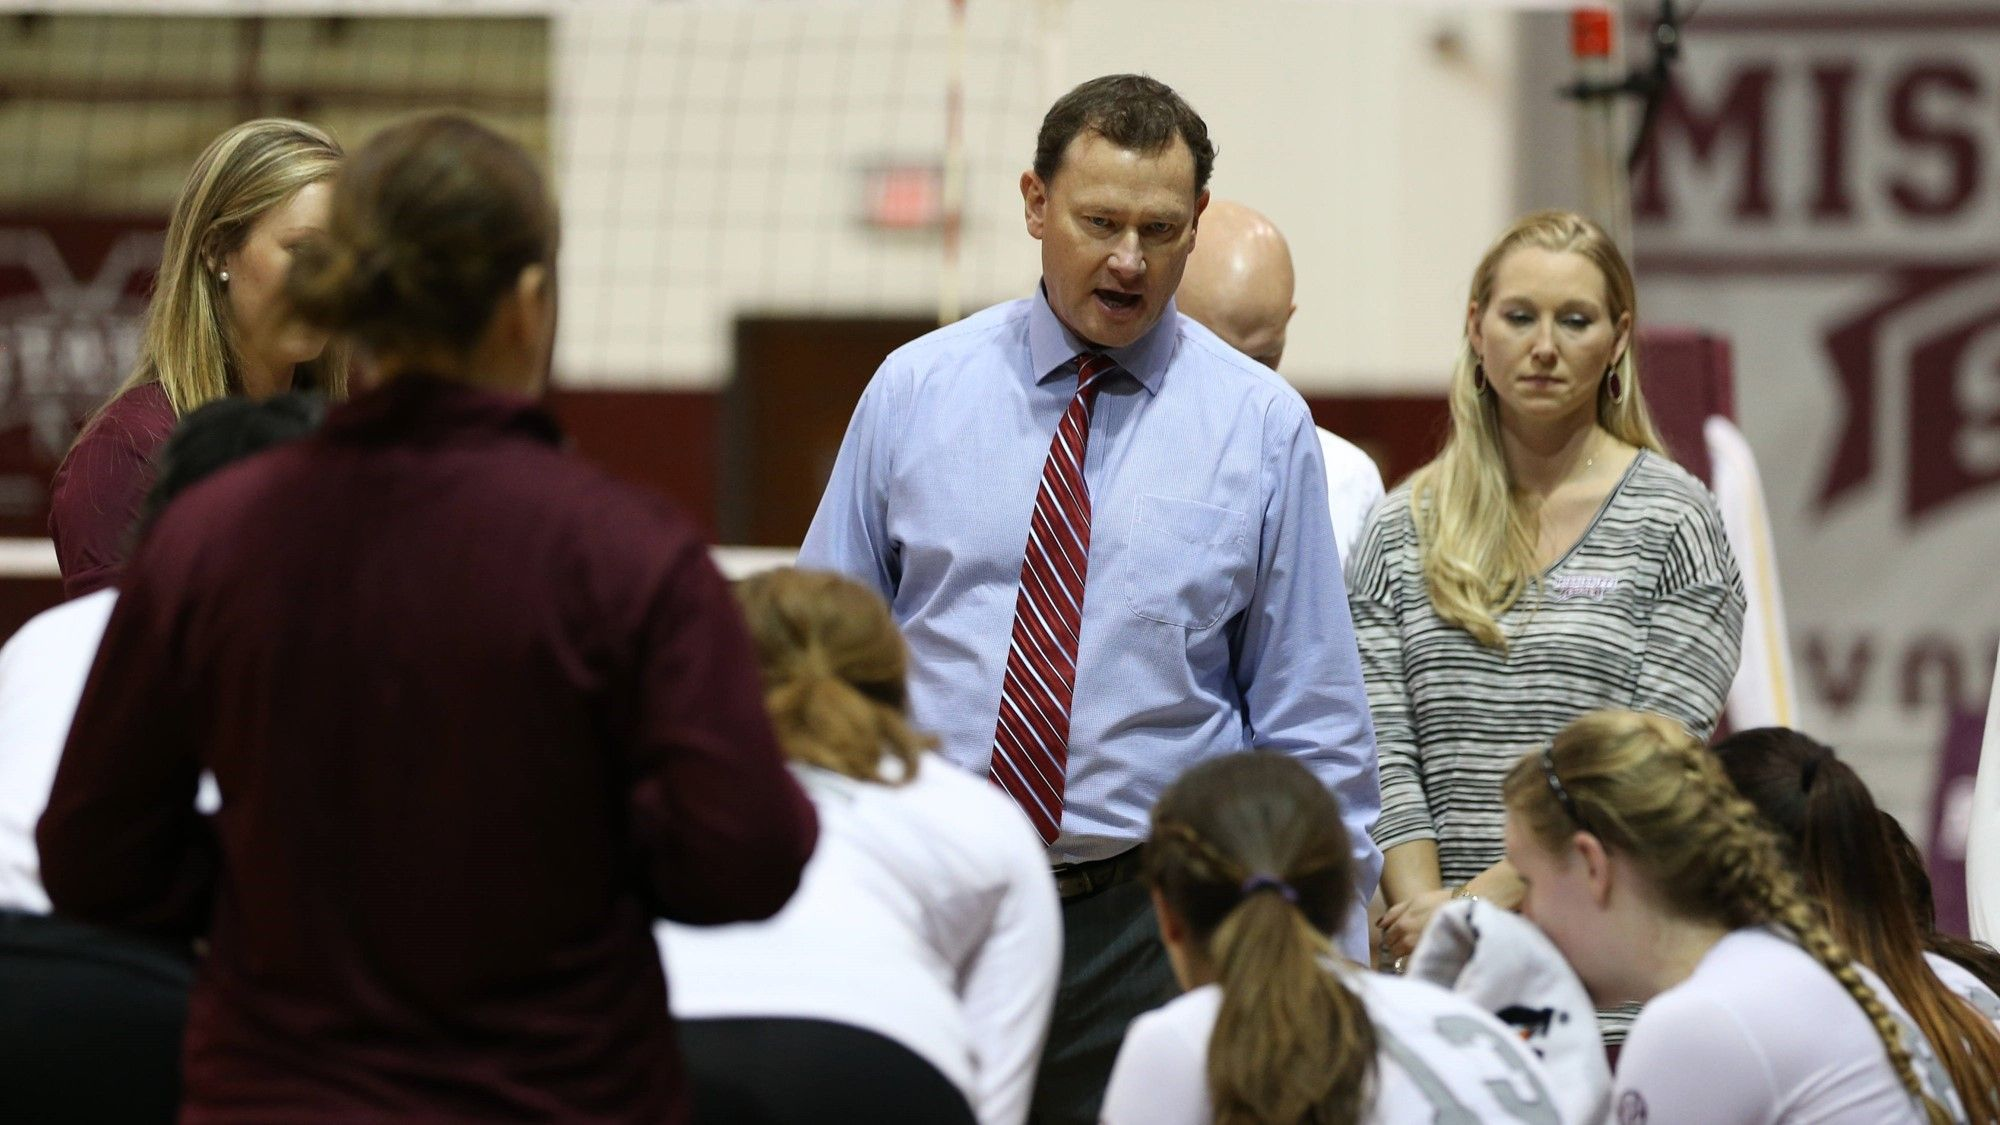 Mcfatrich Announces 2016 Msu Volleyball Schedule Volleyball Volleyball News Mississippi State